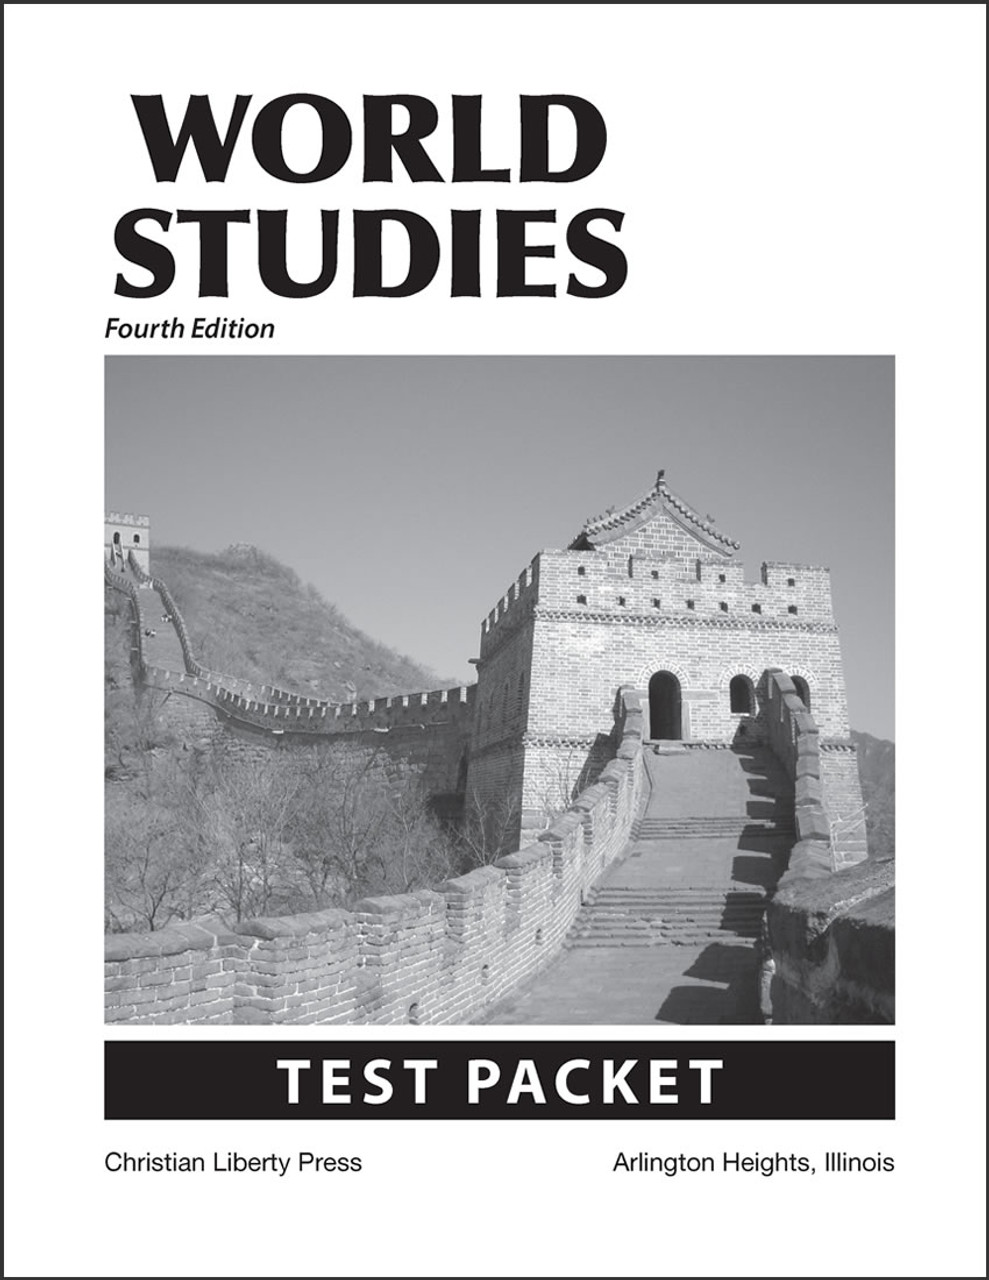 World Studies, 4th edition - Test Packet